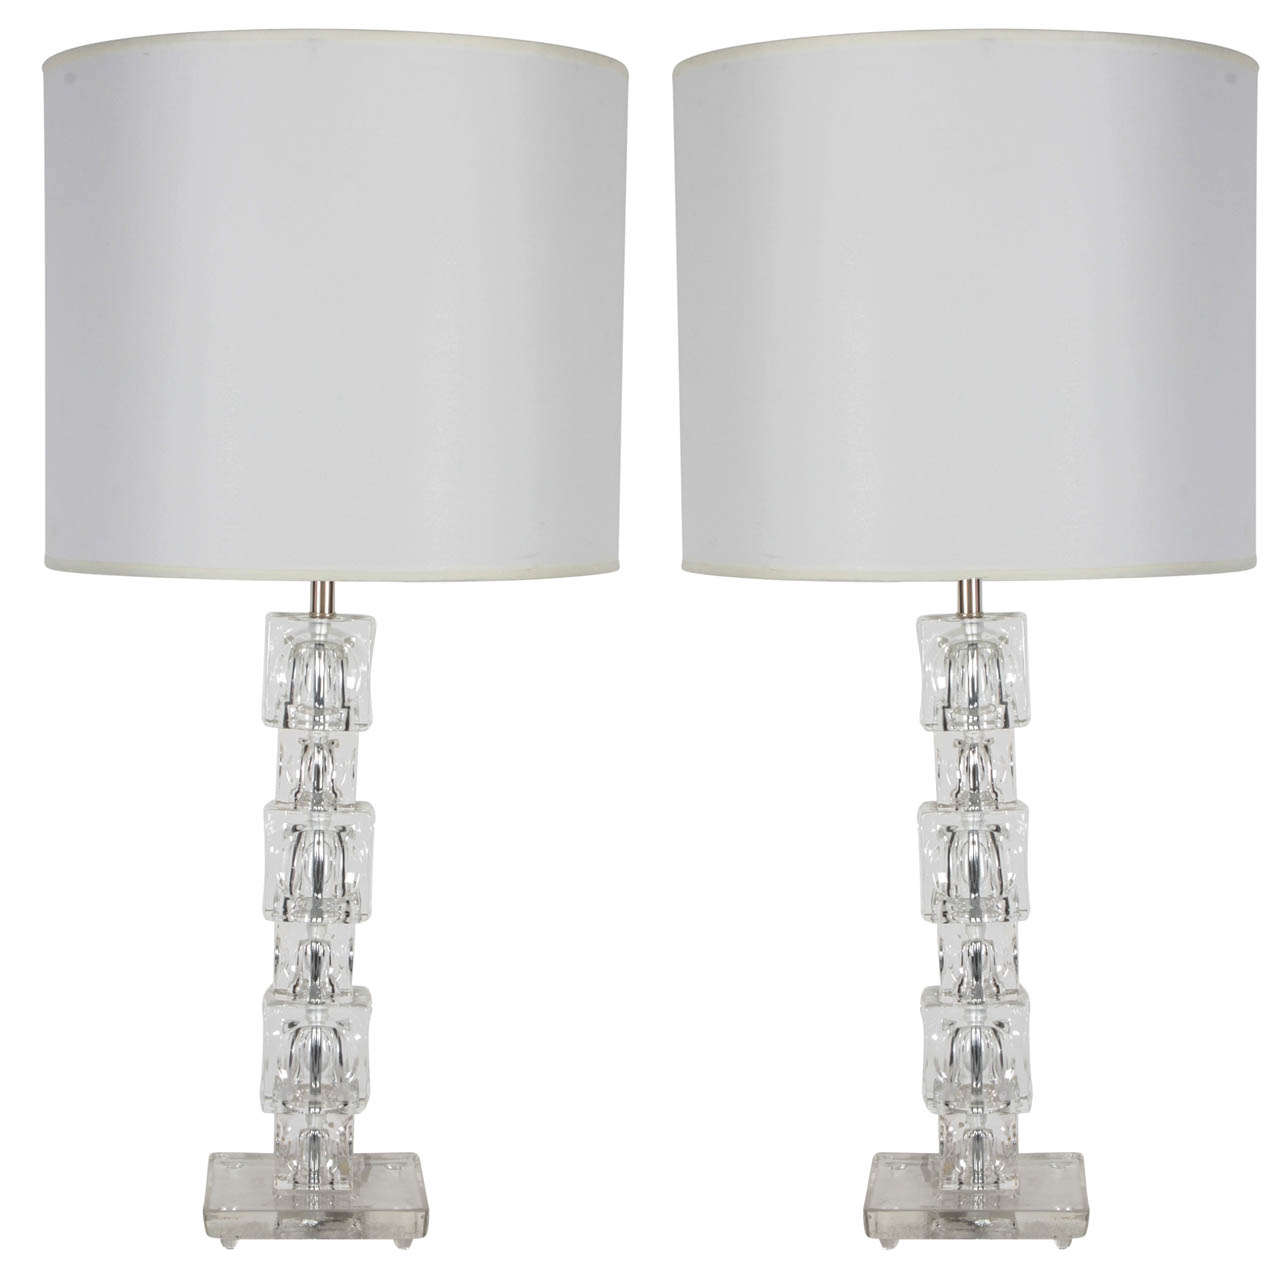 Pair of Stacked Crystal Block Lamps by Orrefors For Sale